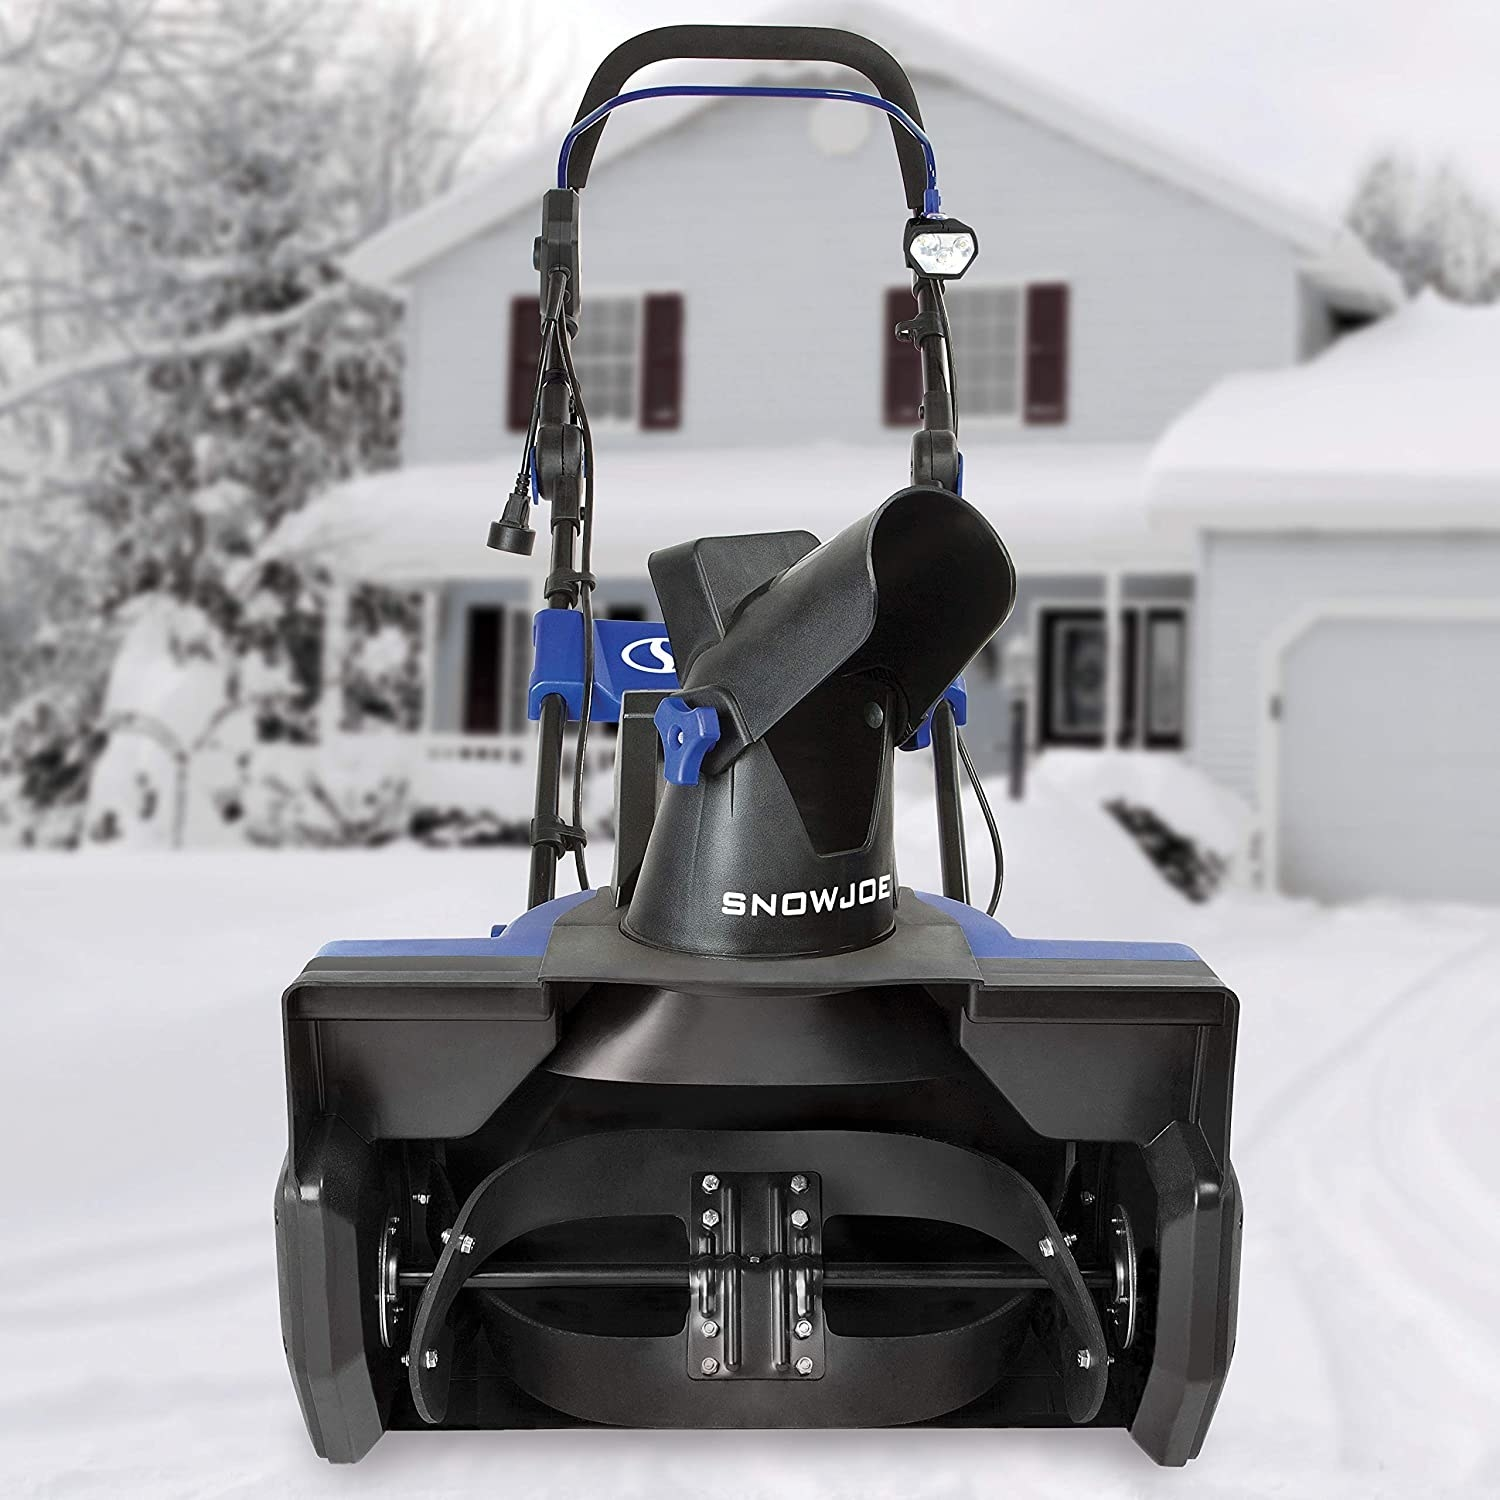 The snow blower in front of a snow-covered house